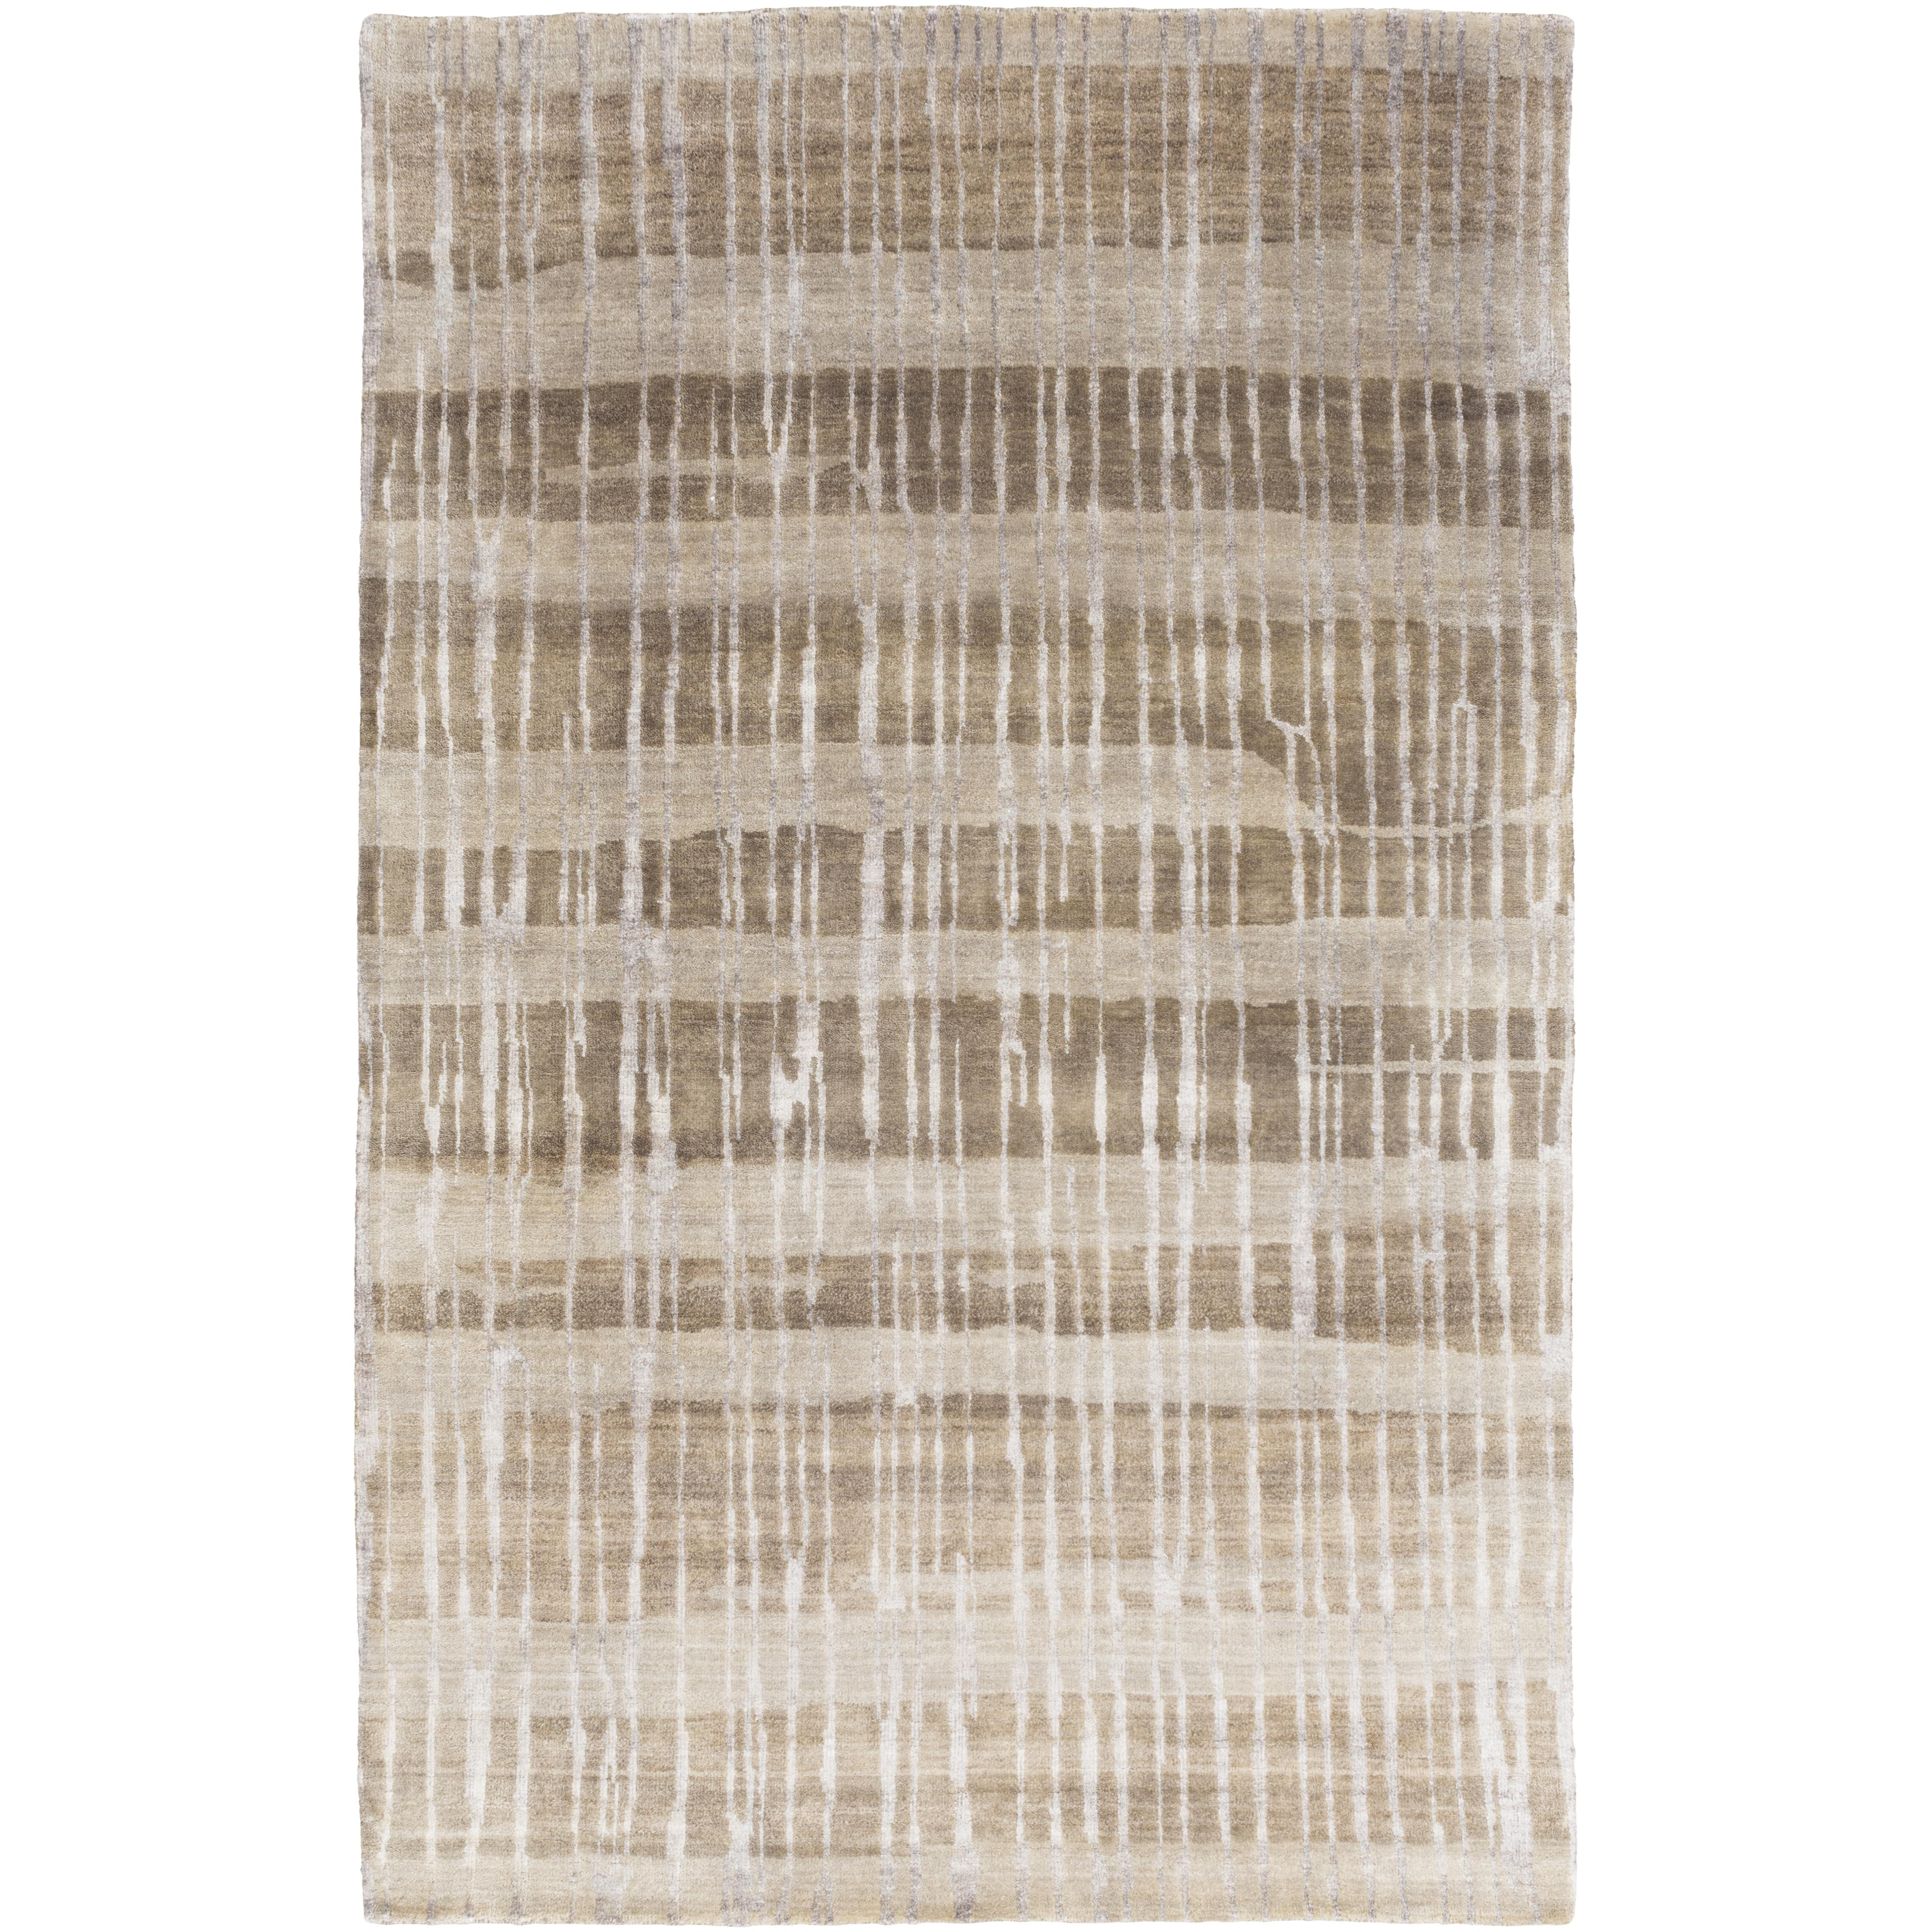 Surya Rugs Luminous 2' x 3' - Item Number: LMN3021-23